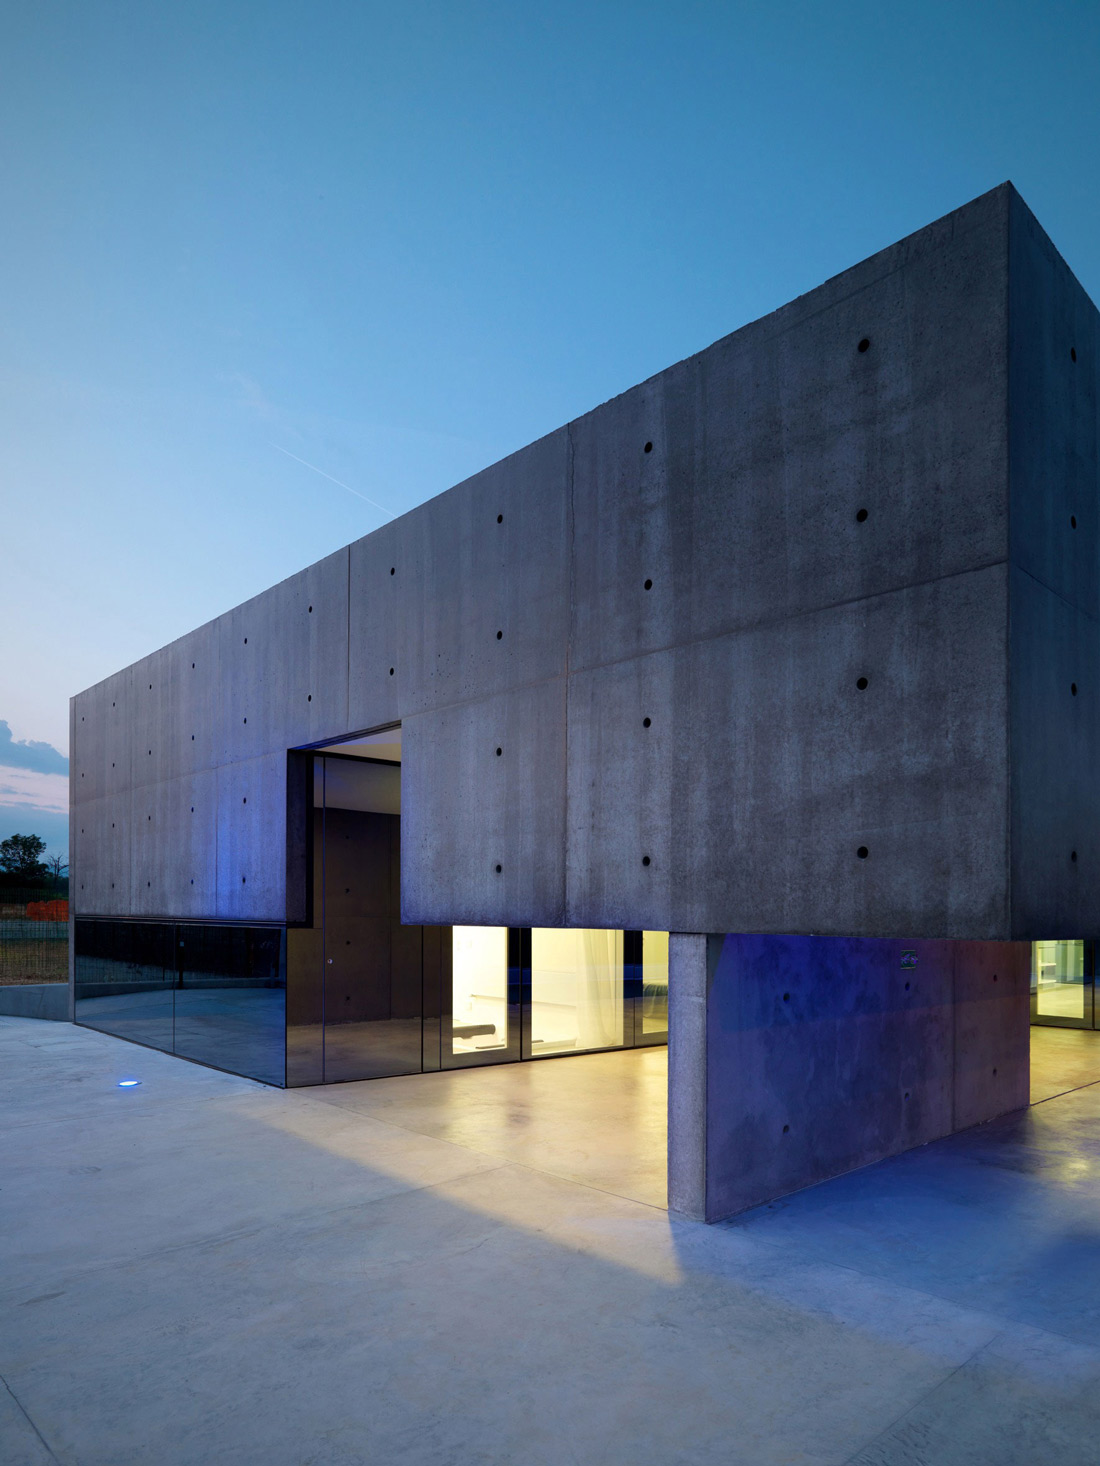 Lighting, Dusk, Concrete and Glass Home in Urgnano, Italy